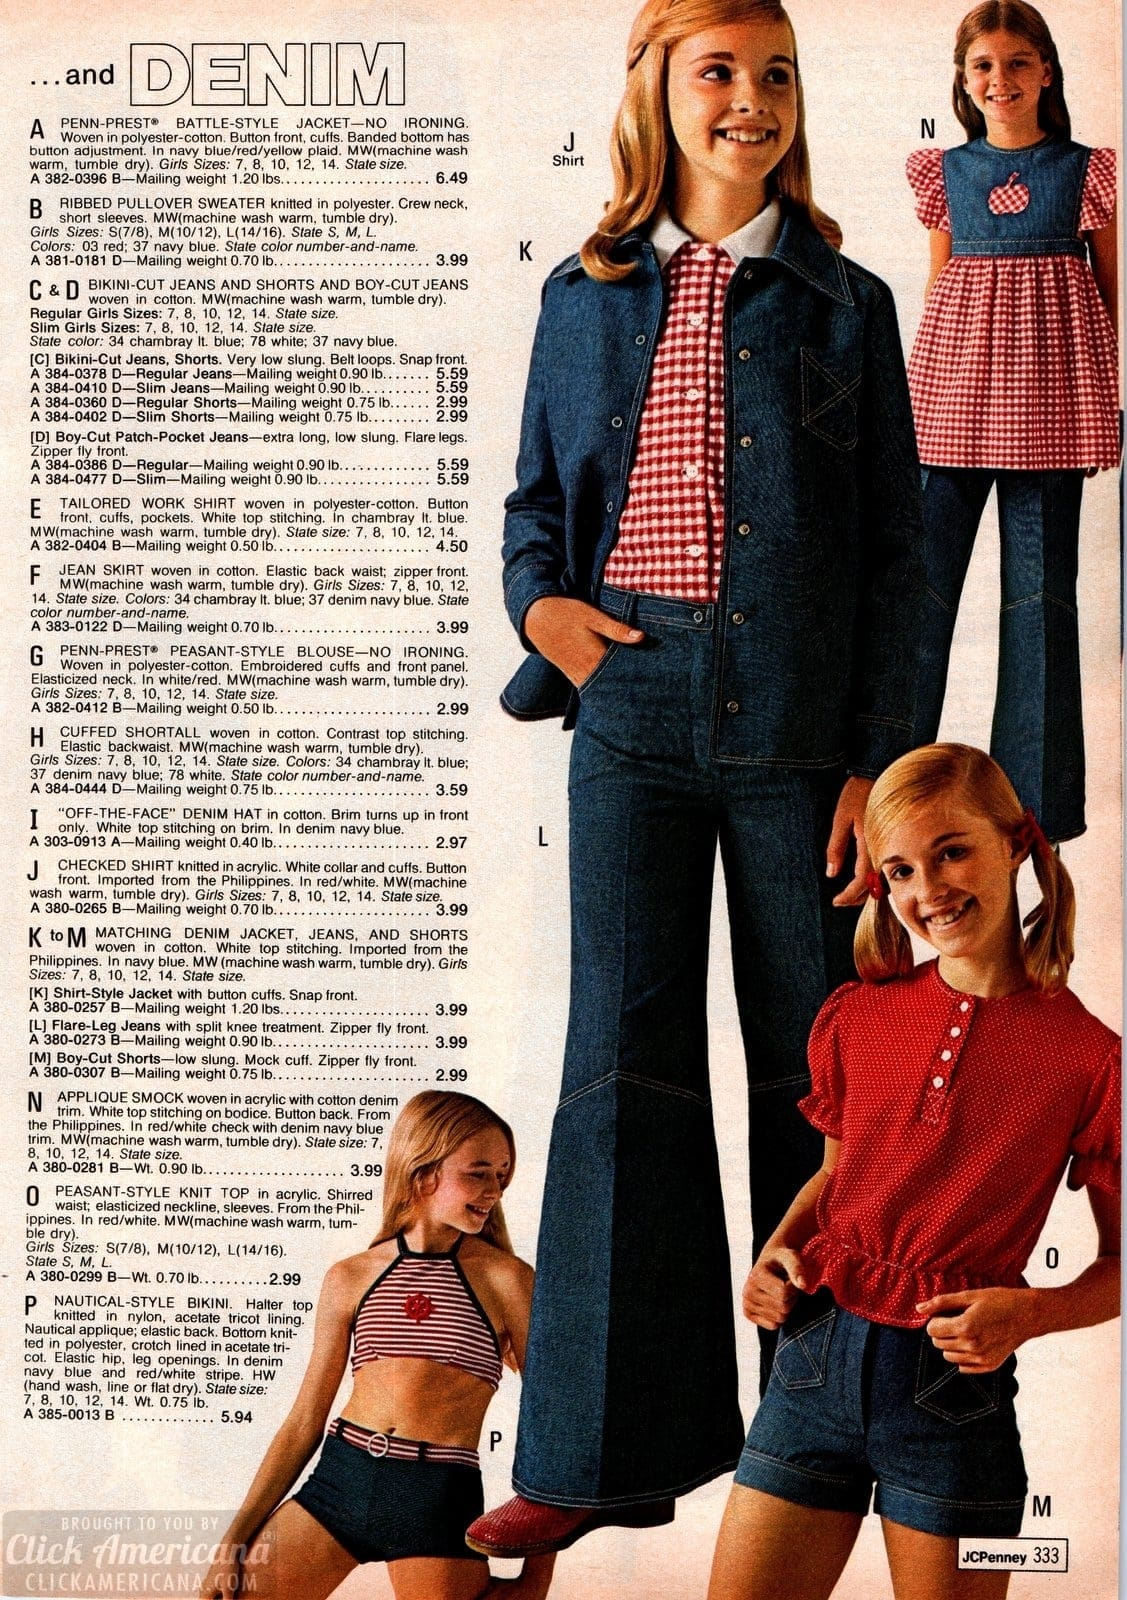 Retro denim outfits for girls - bikini-cut jeans and jean skirts plus peasant-style tops